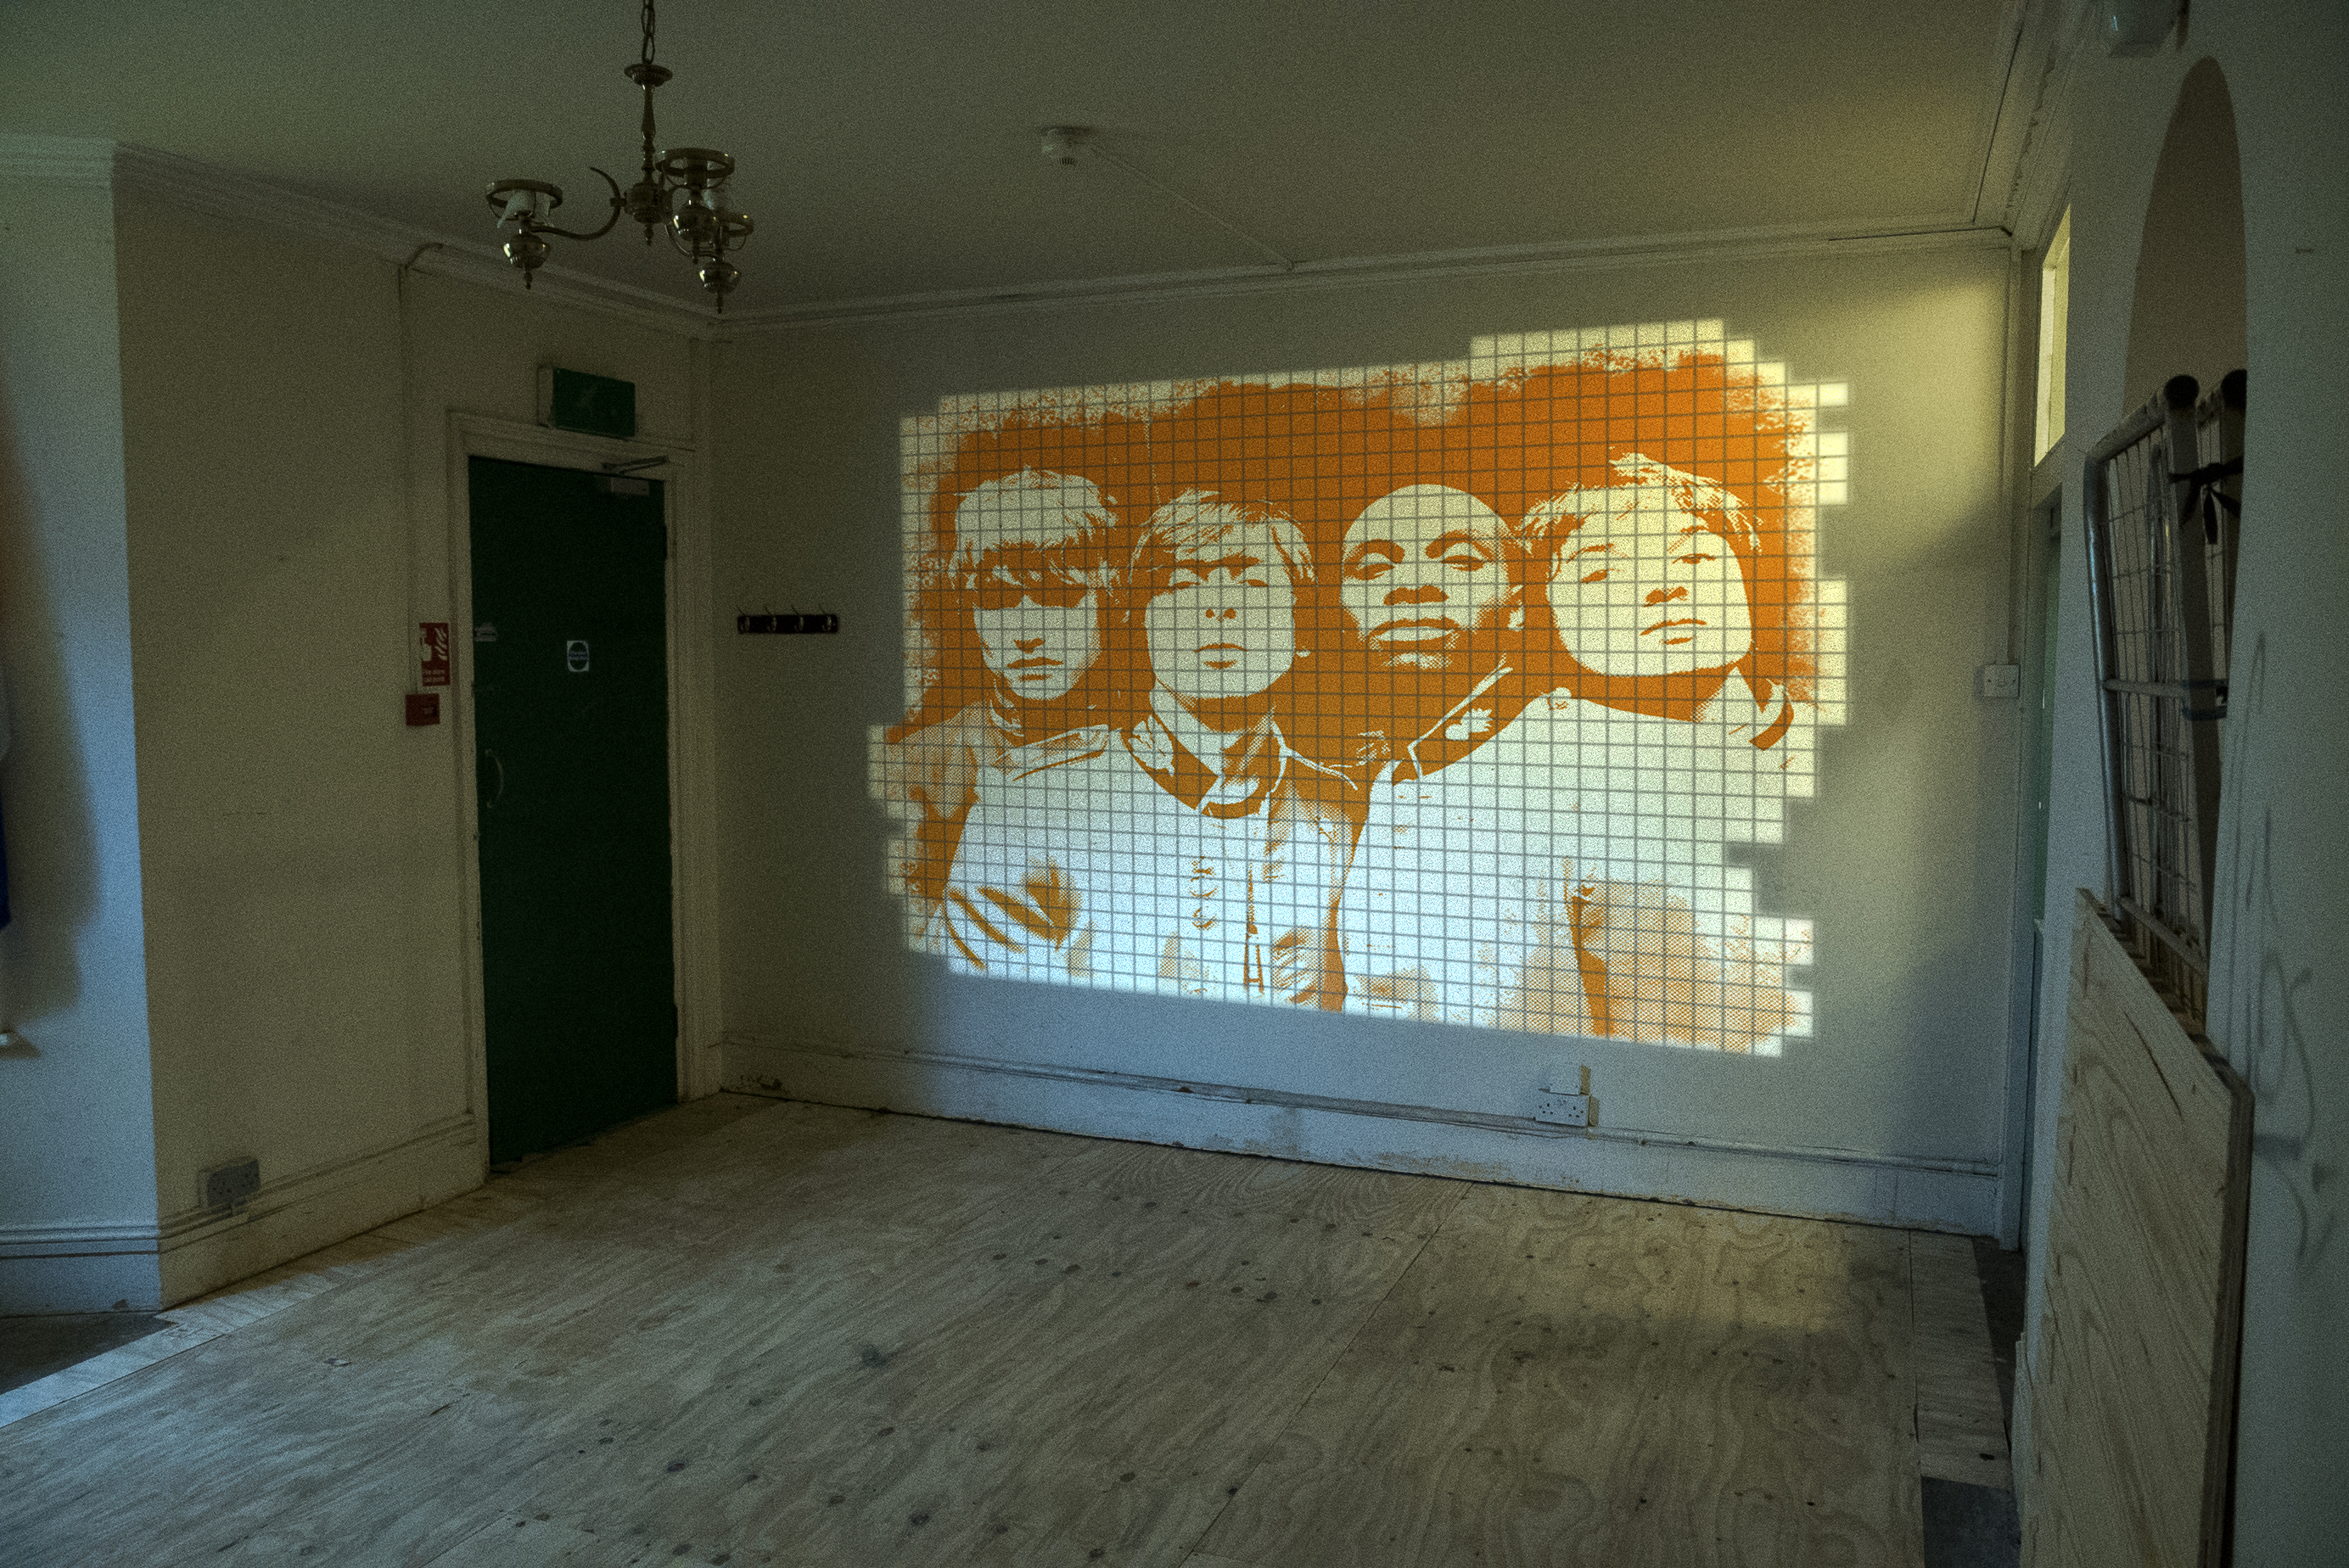 Personalised Mural Tile - Albion Rooms Margate